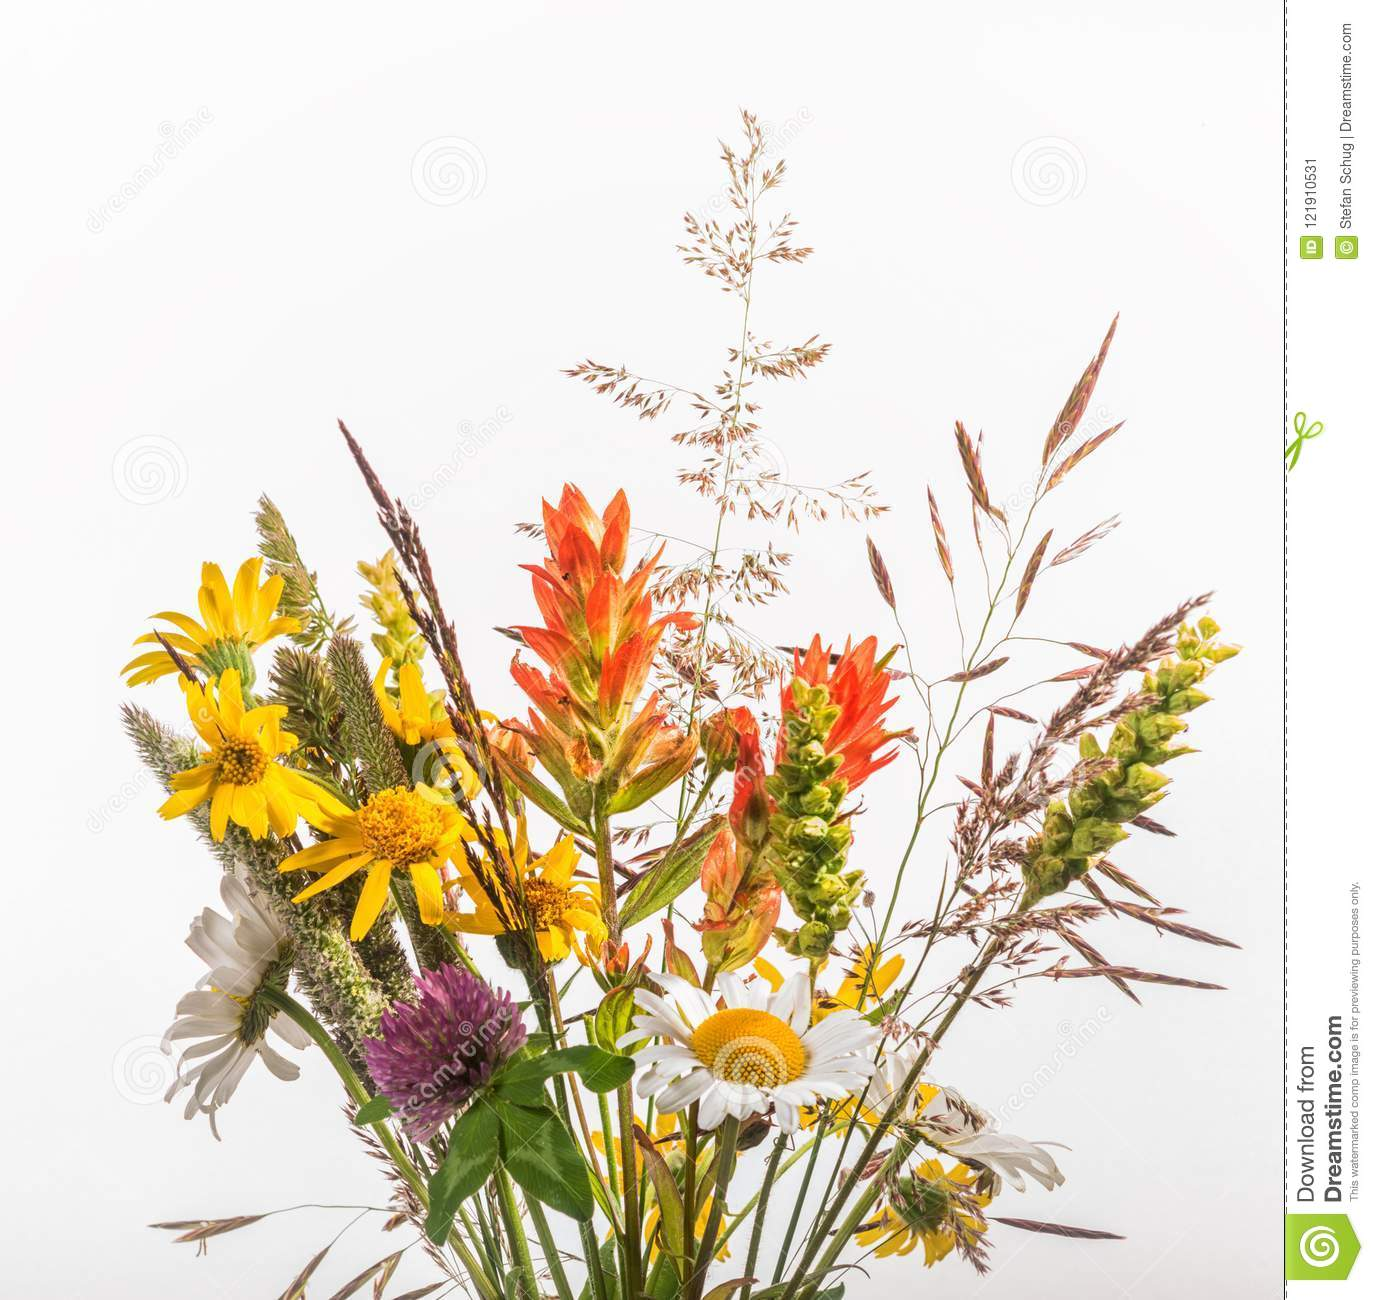 39 798 Wildflower Bouquet Photos Free Royalty Free Stock Photos From Dreamstime